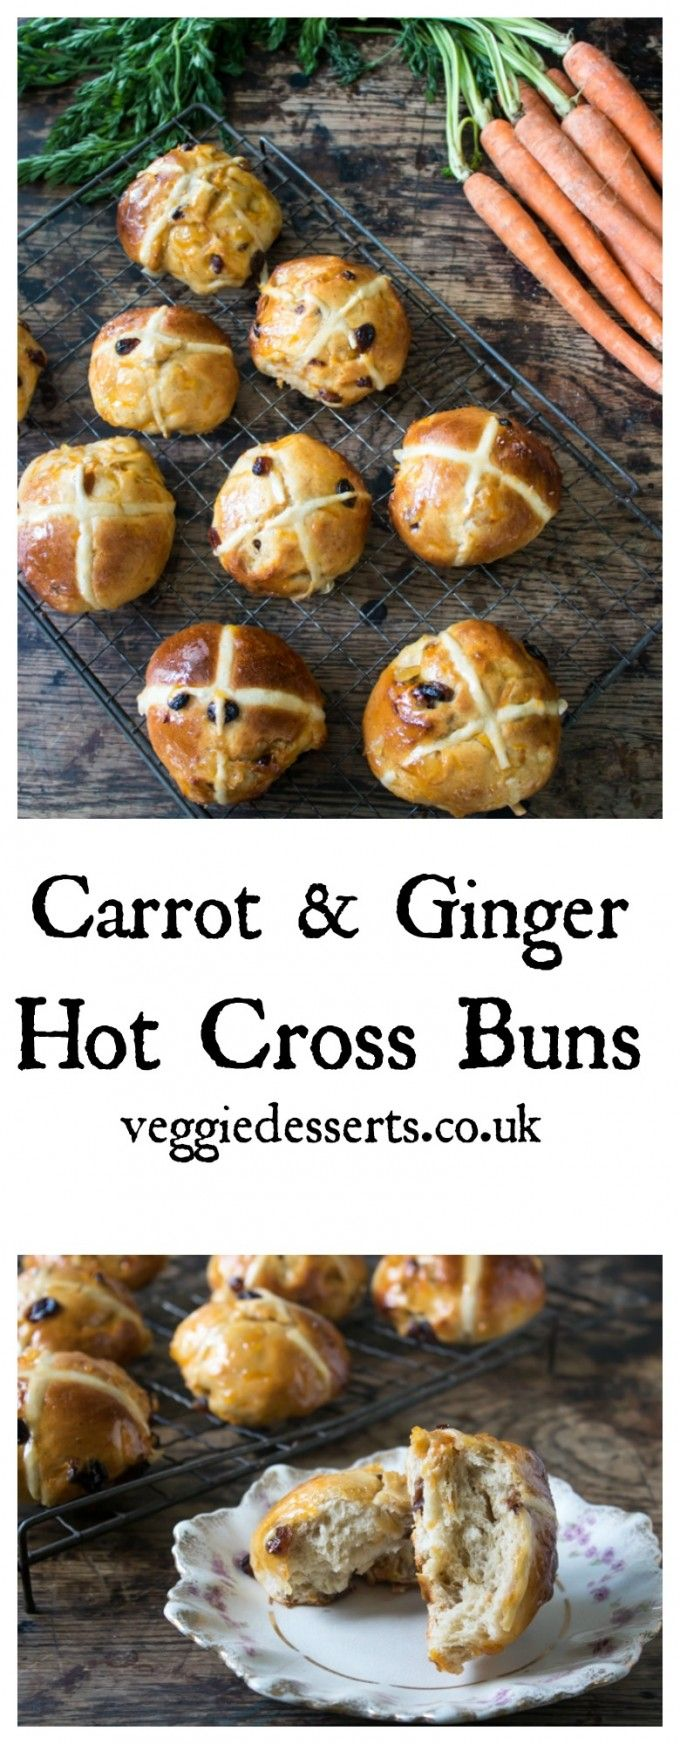 Carrot and Ginger Hot Cross Buns   Veggie Desserts Blog These carrot and ginger hot cross buns are packed full of flavour – and veggies! They're soft, fluffy and taste of gingery carrot cake. Perfect for springtime and Easter. veggiedesserts.co.uk